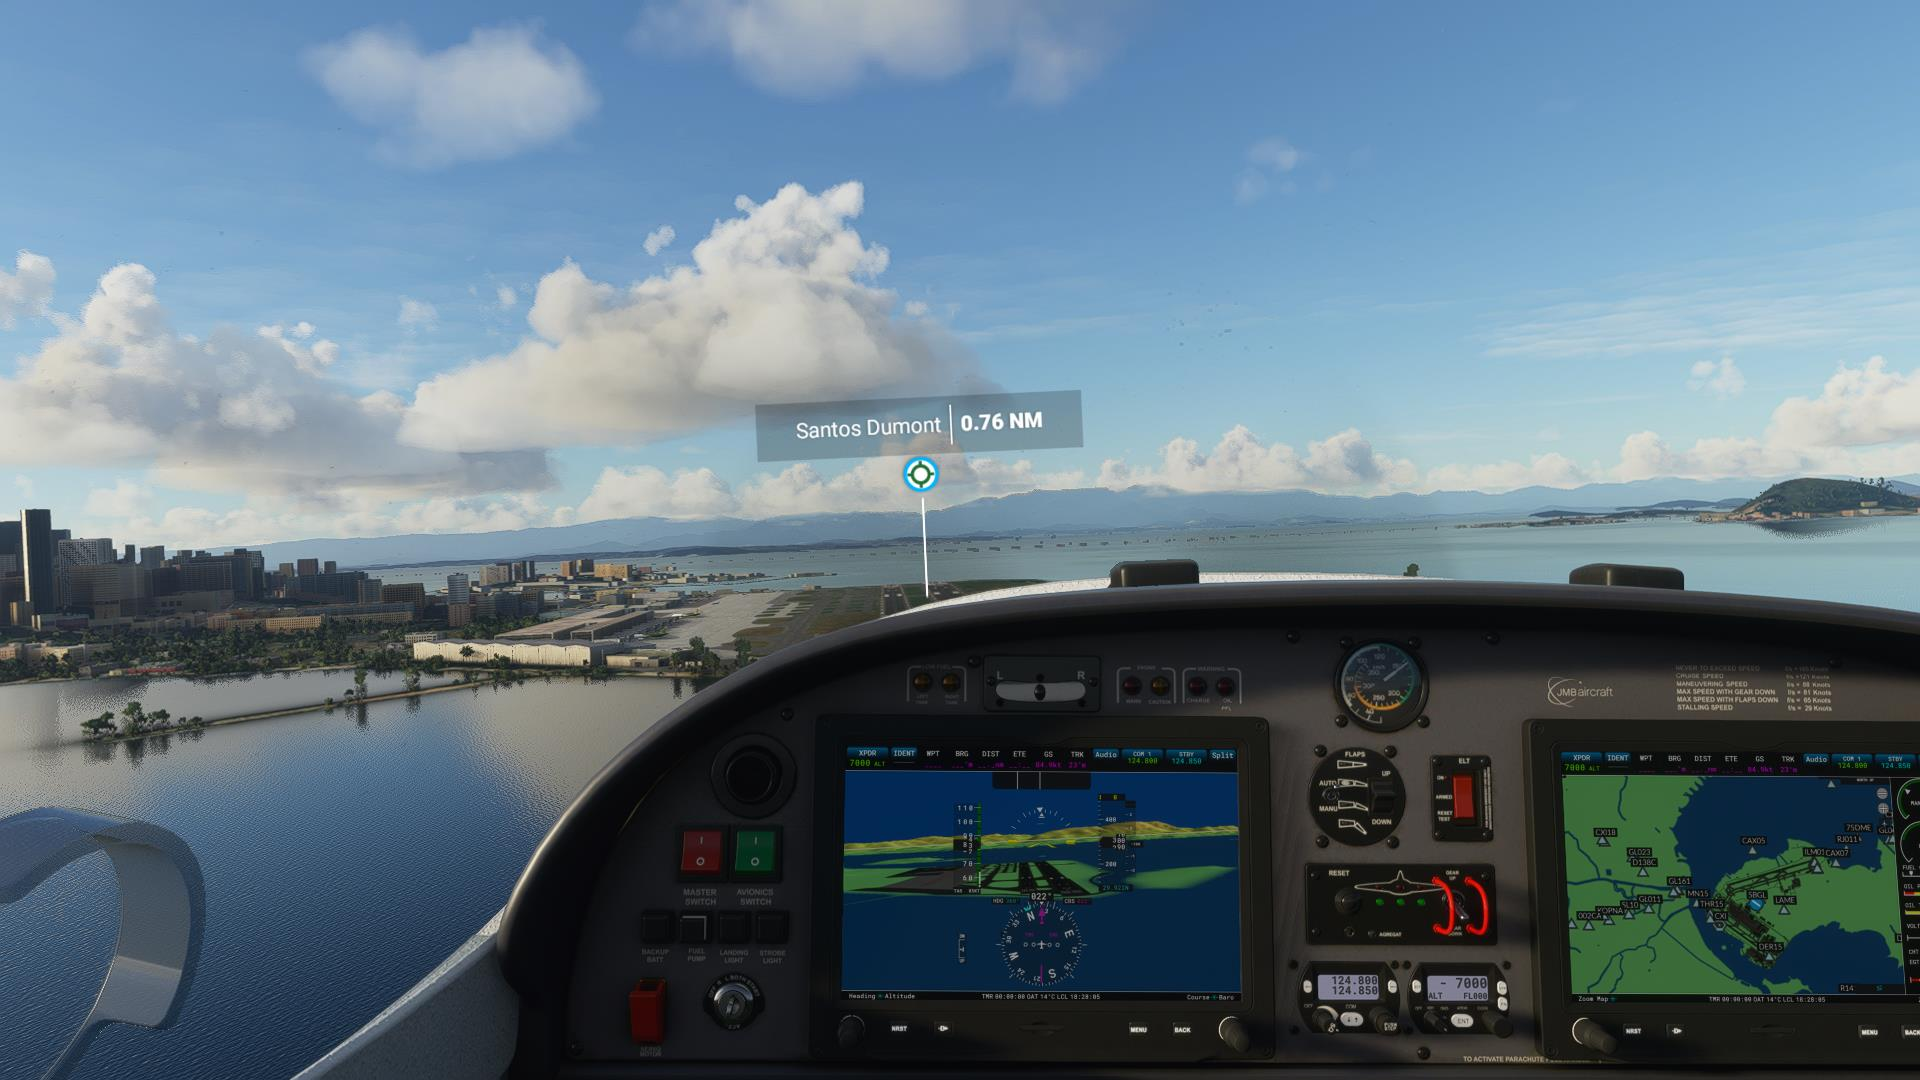 https://vivendobyte.blob.core.windows.net/57793/Microsoft Flight Simulator 13_01_2021 20_06_02.jpg